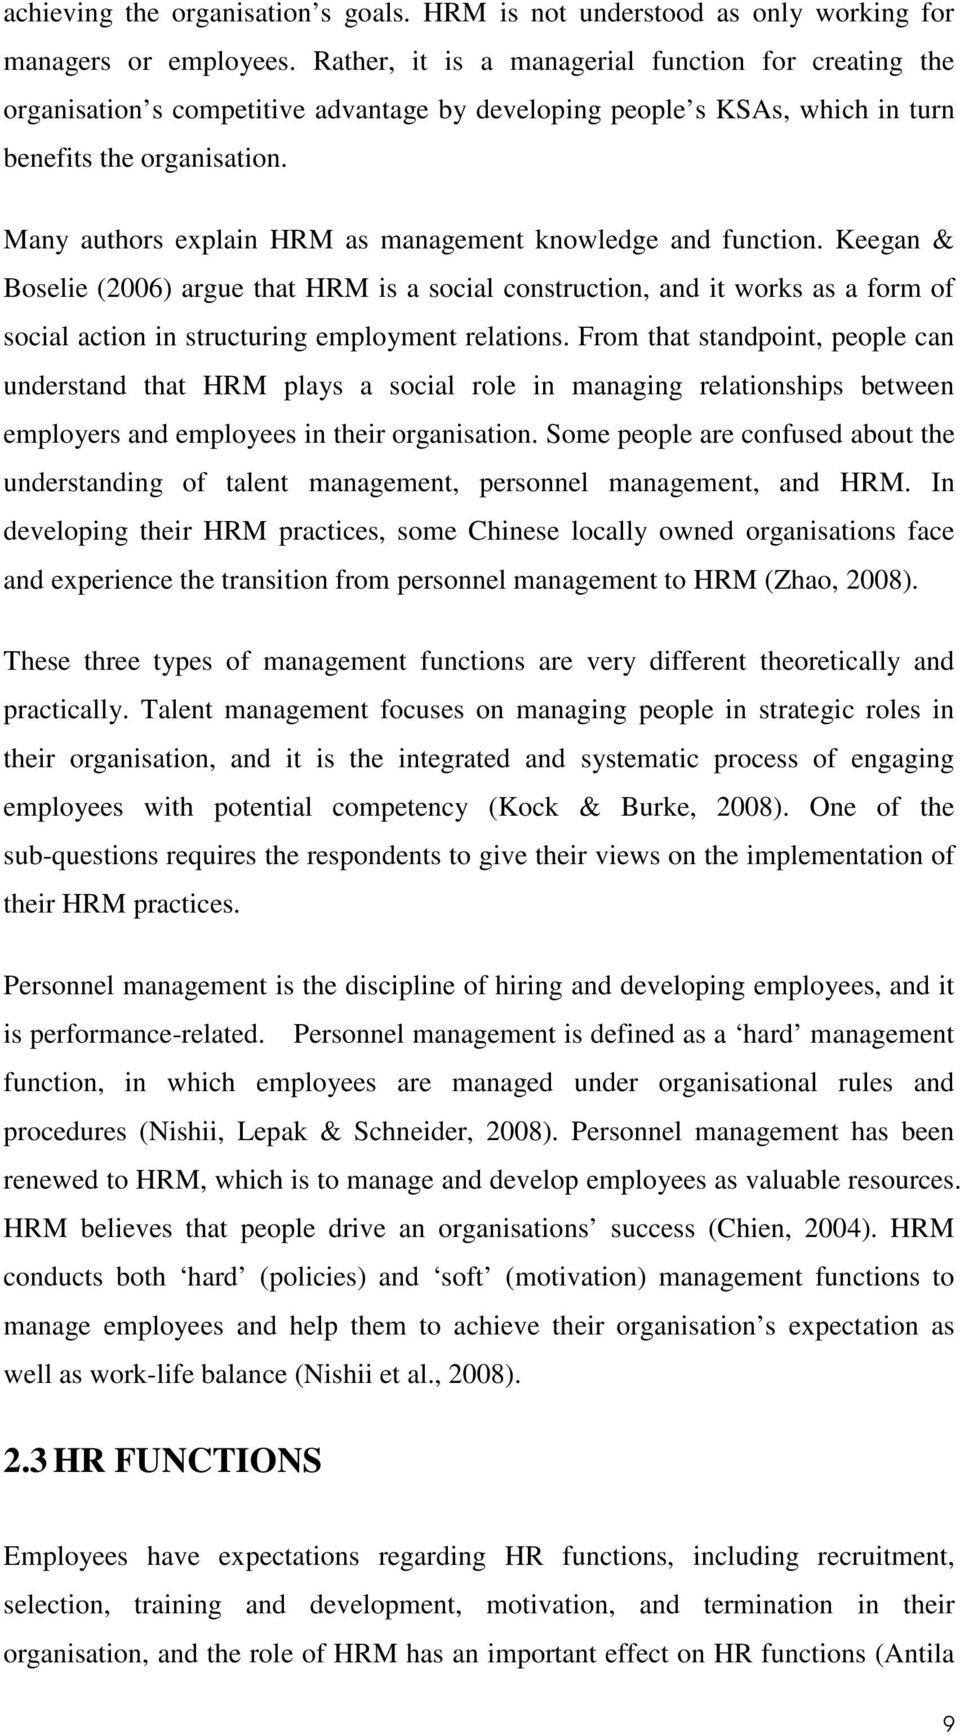 Many authors explain HRM as management knowledge and function.